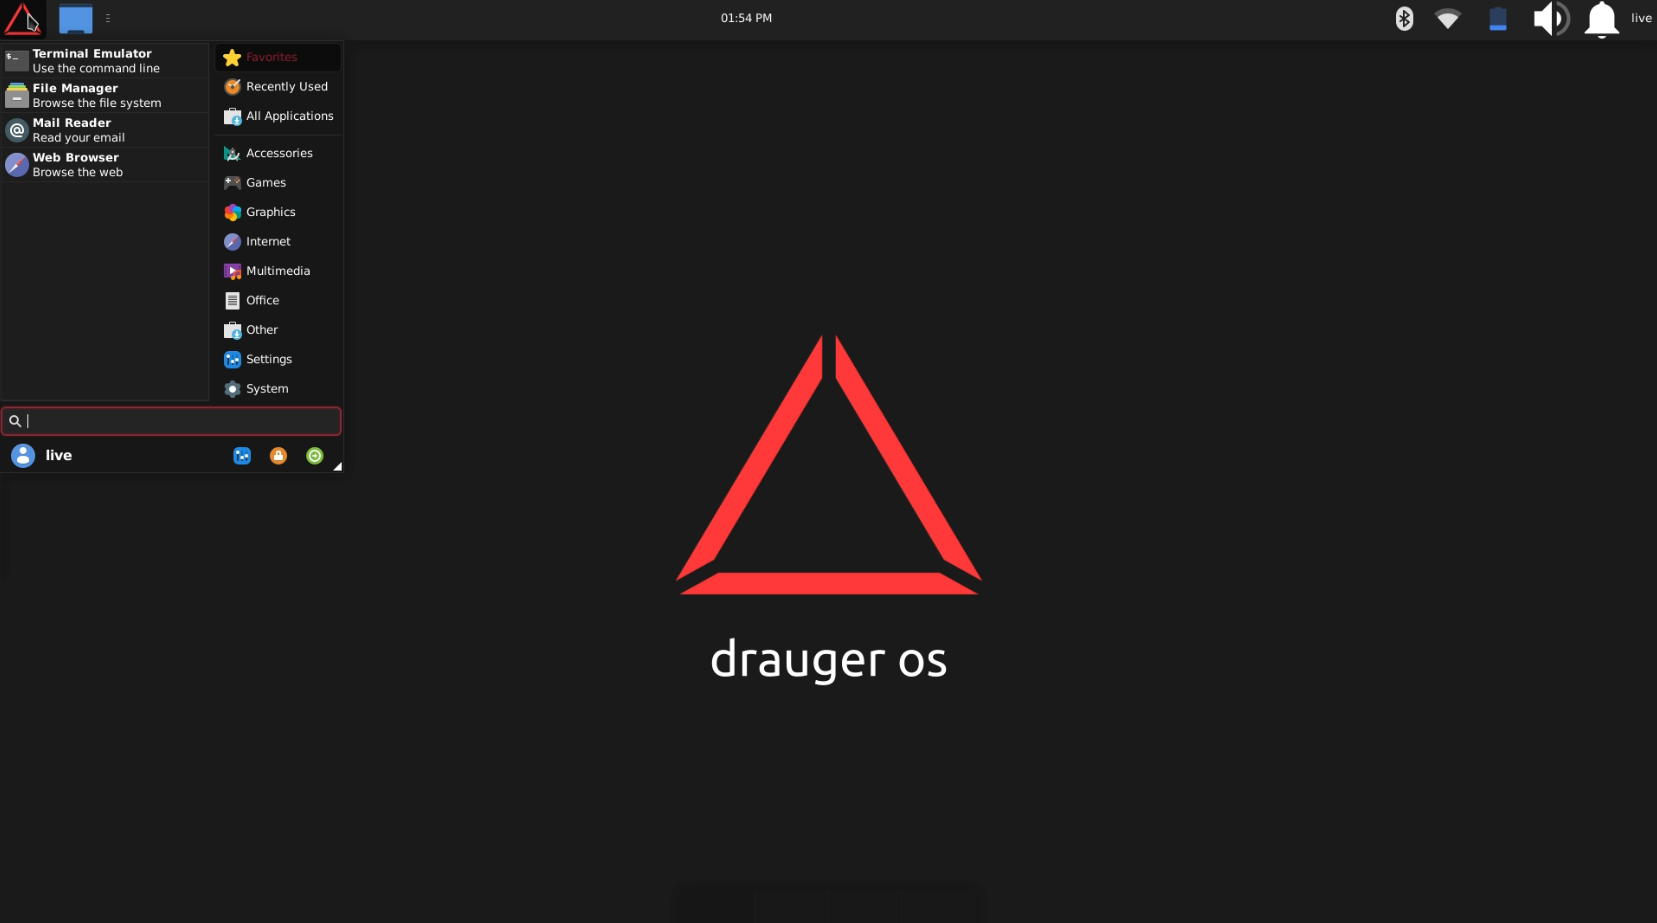 Drauger Os 7 5 1 Review The Linux Distro For Gaming By Egee Distro Delves Medium